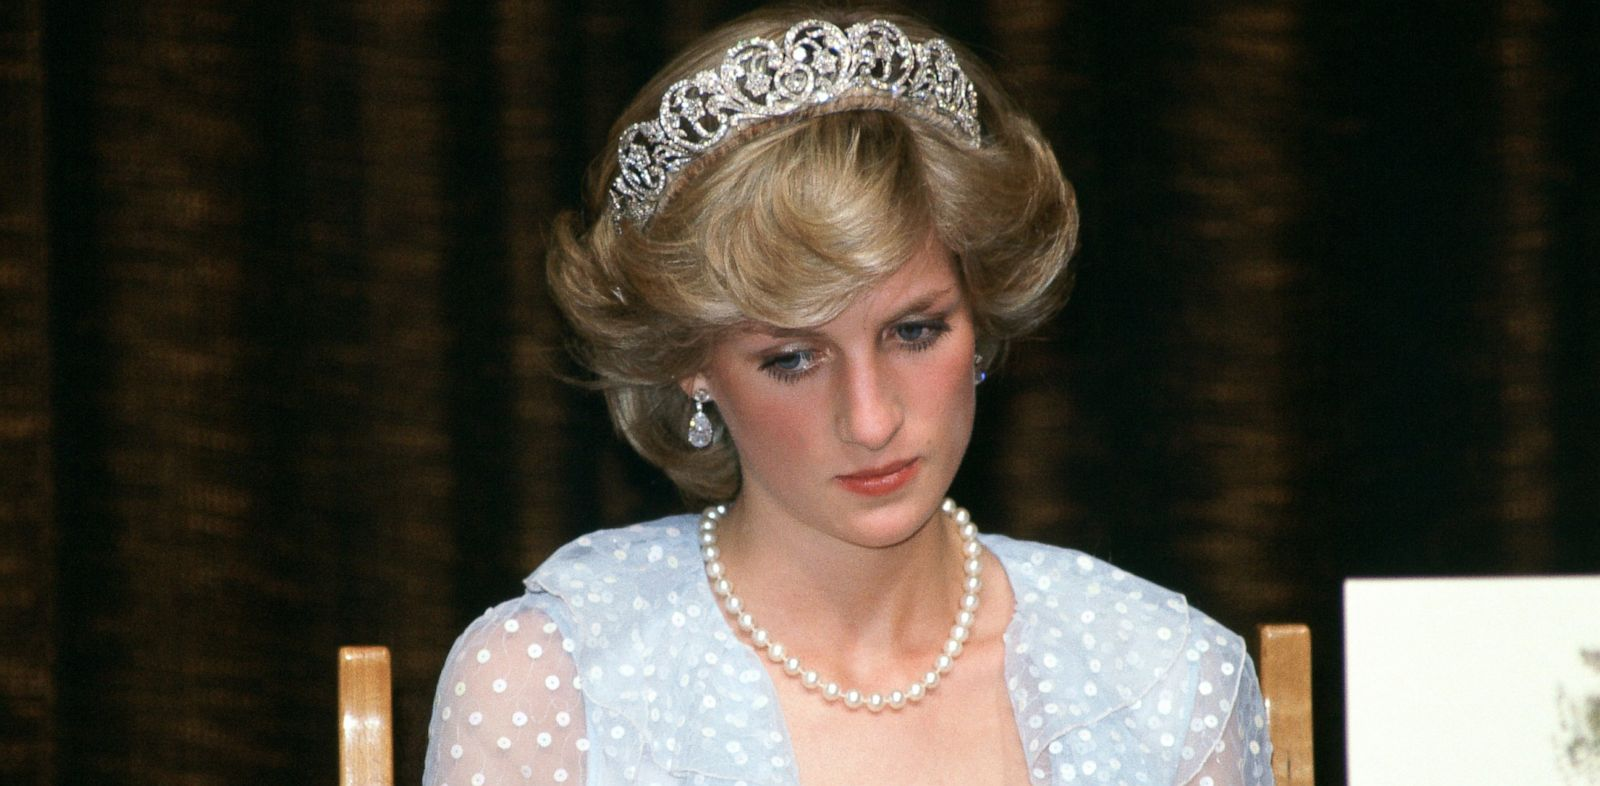 Princess Diana's Butler Reveals the Heartbreaking Last Words She Said to Him Before She Died